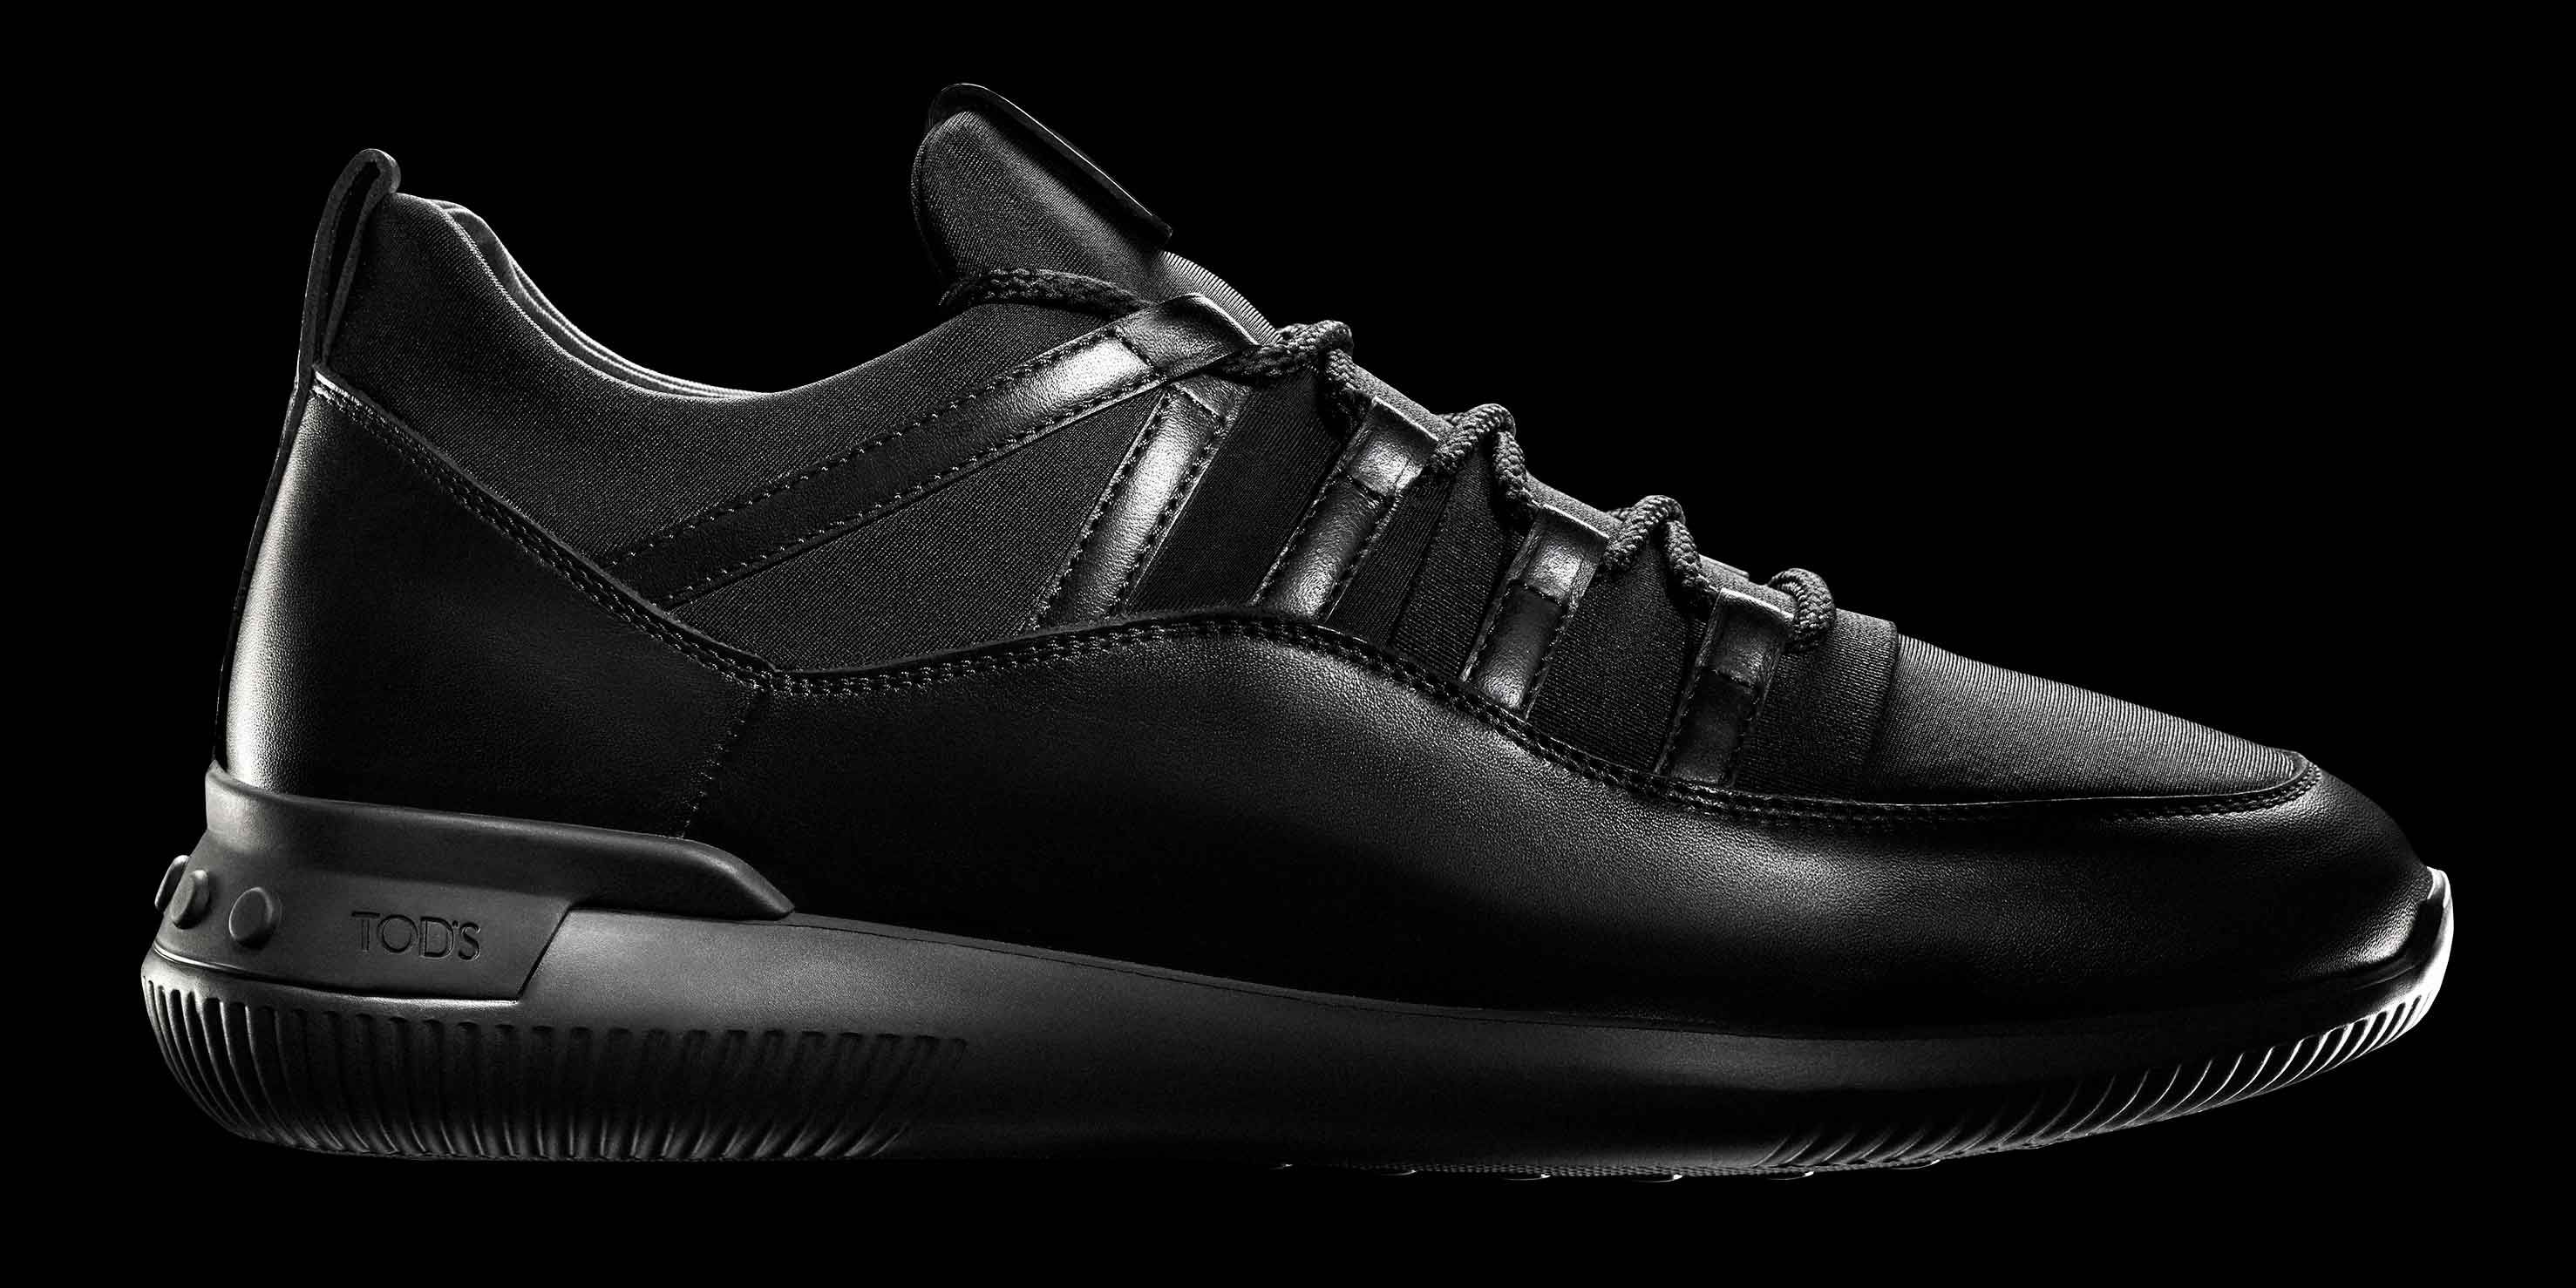 Tod's NoCode Footwear: AW13 Collection